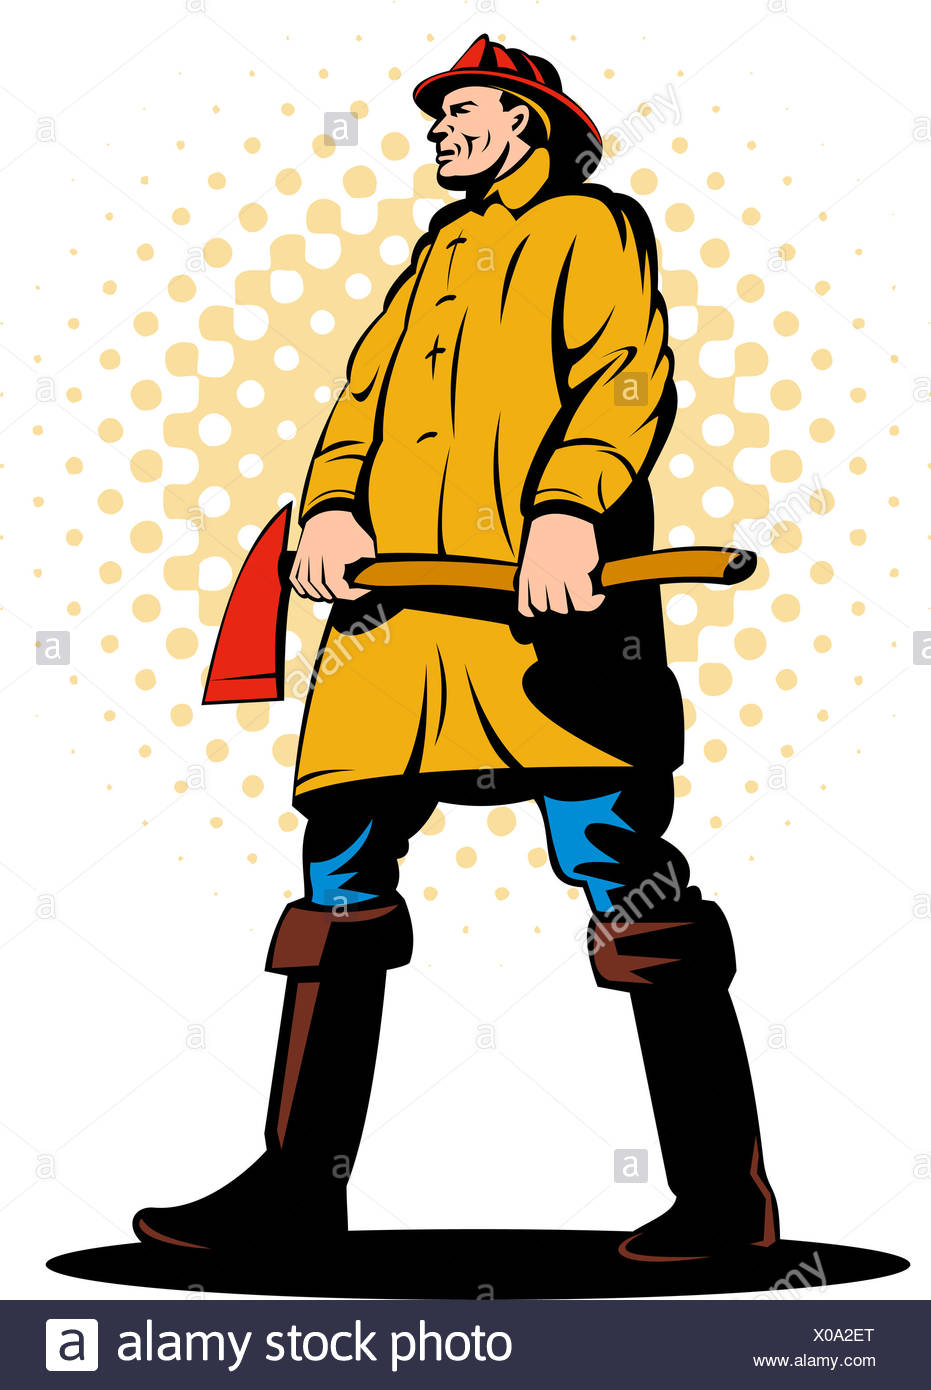 931x1390 Illustration Fireman Fire Fighter Done Stock Photos Amp Illustration